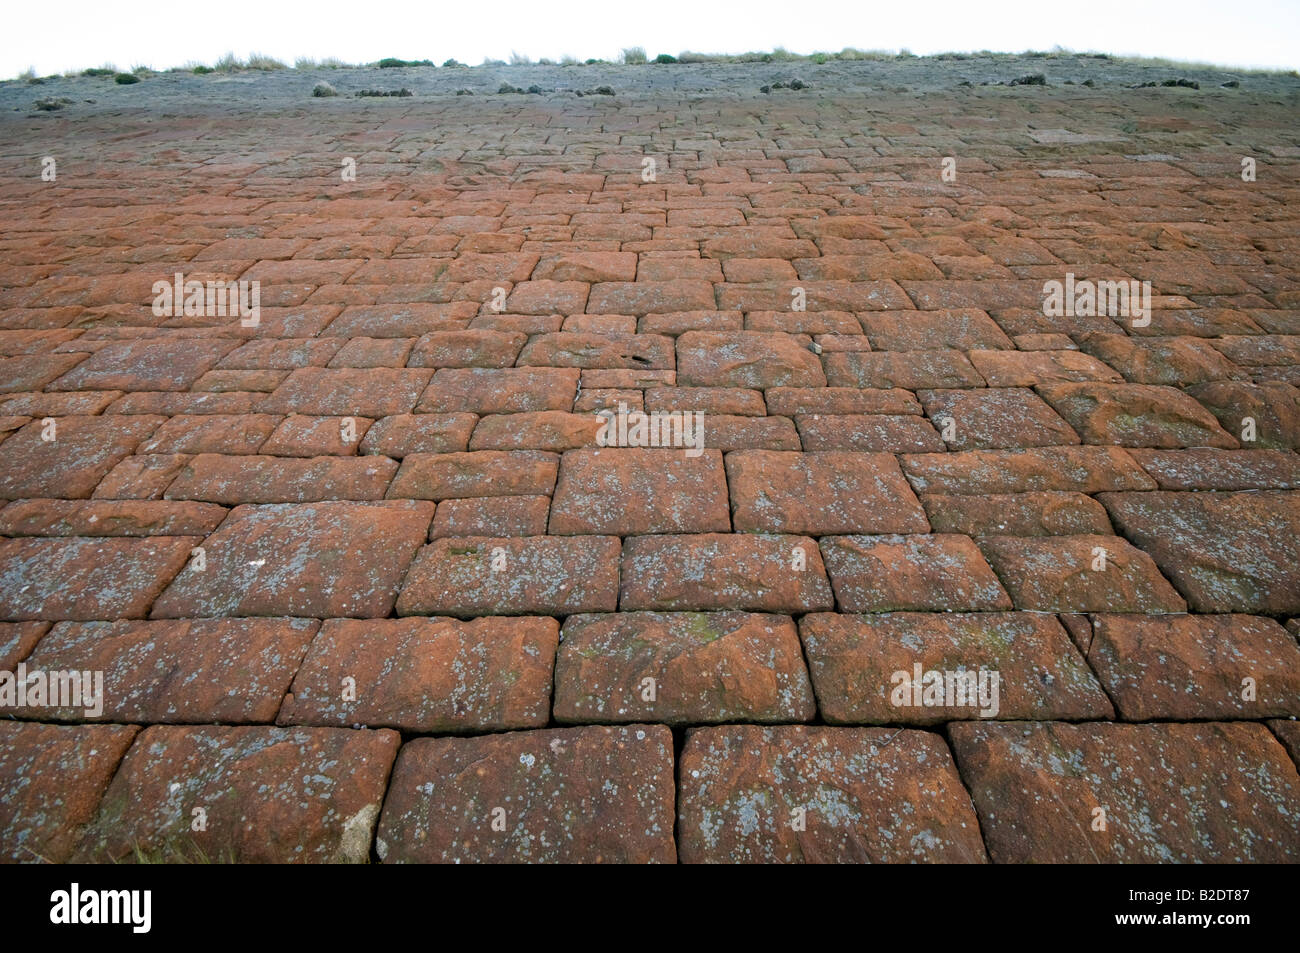 Stone blocks forming the main dam wall on drained reservoir - Stock Image